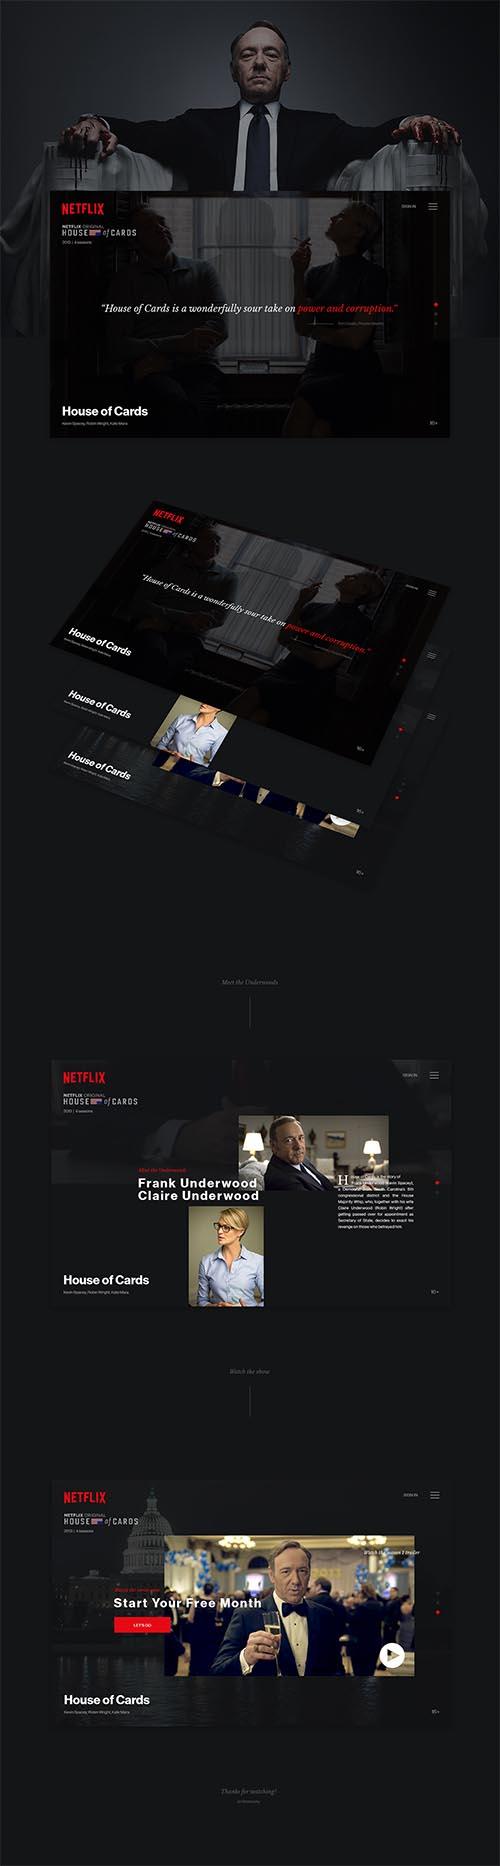 House of Cards website redesign By Jiří Wranovský